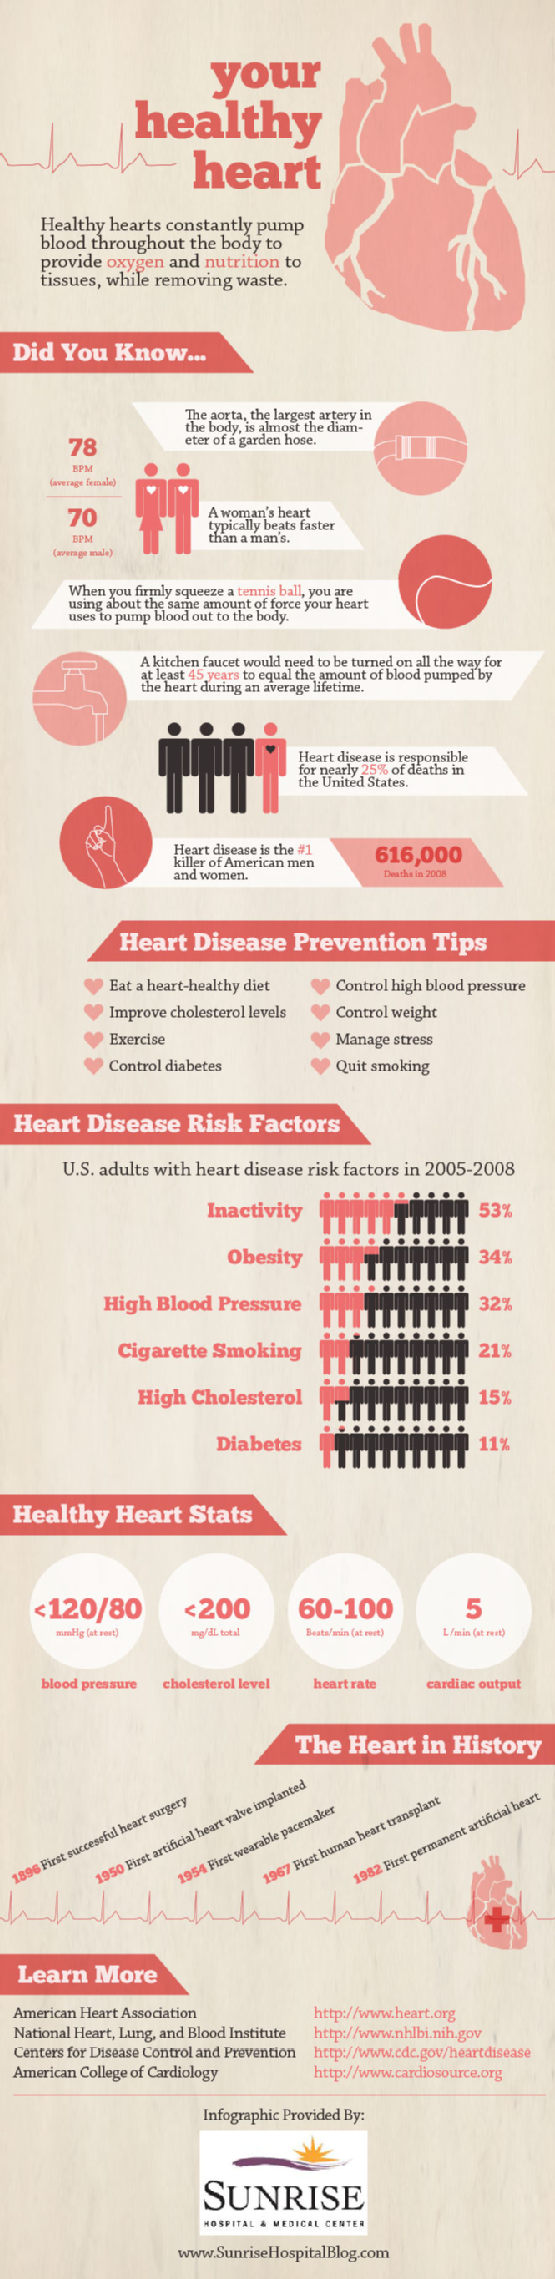 Tips for Heart Health and Heart Disease Prevention